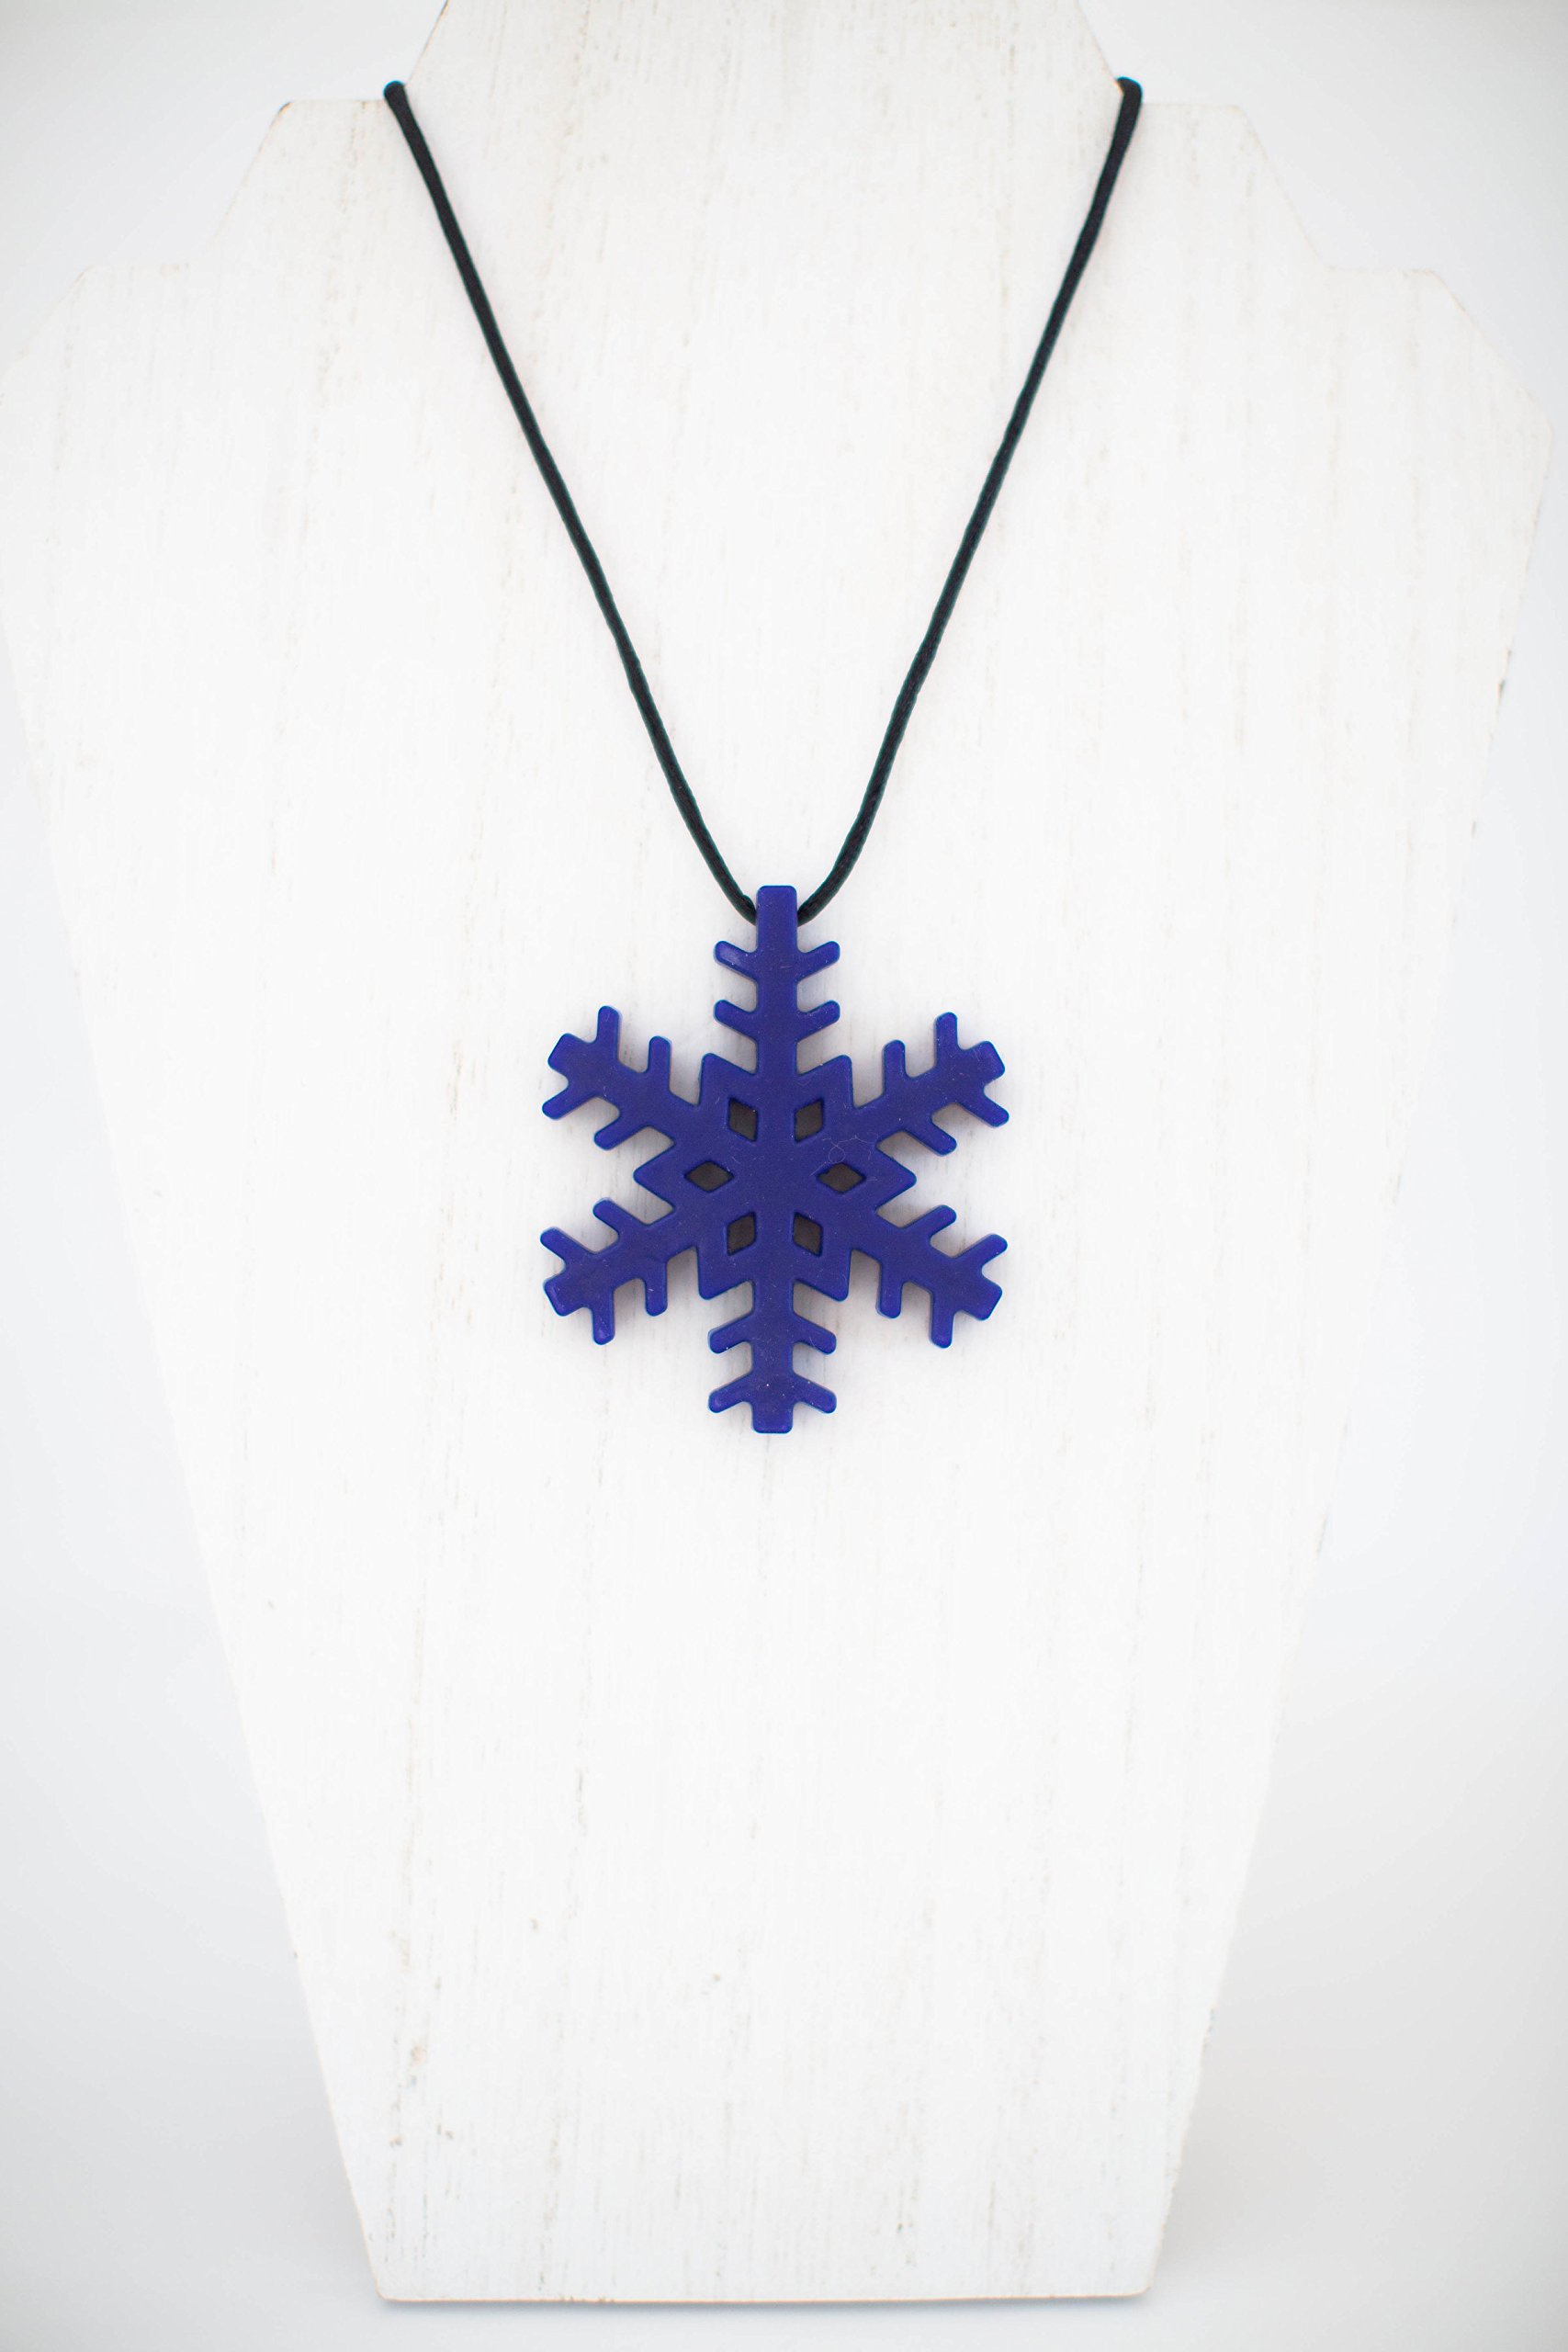 Chewby Chewelry Snowflake Chewlery Chew Necklace - Chewy Oral Sensory Aid Teether - Useful for Autism, SPD - for Boys and Girls; Children